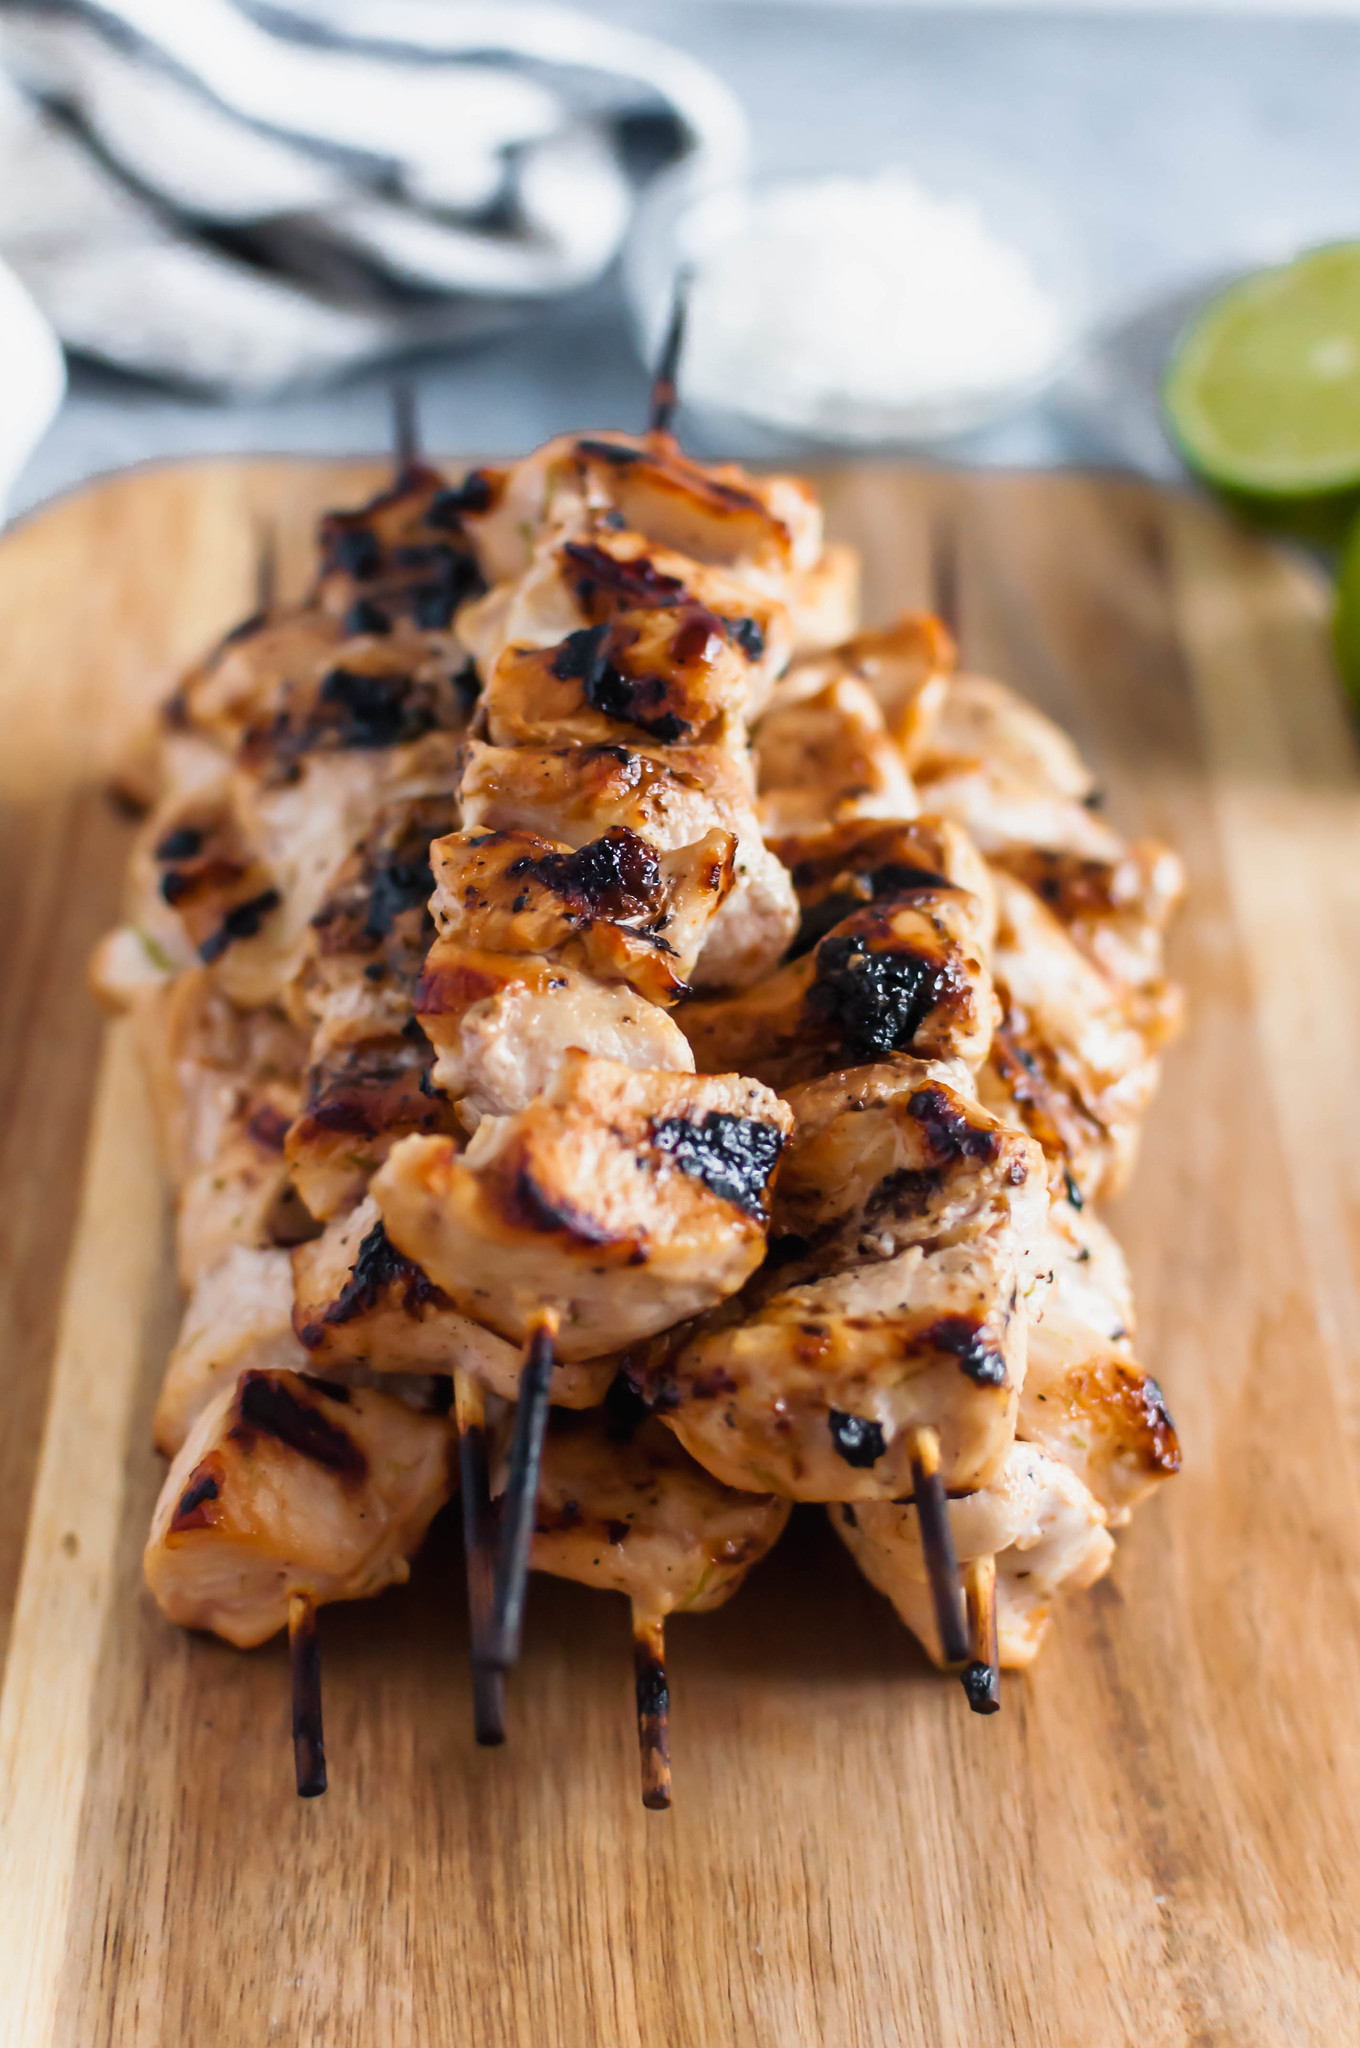 Need some tropical vibes in your life?! This Grilled Coconut Chicken will transport your mind to the beach. Simple, healthy and packed with coconut flavor. A super easy summer meal!